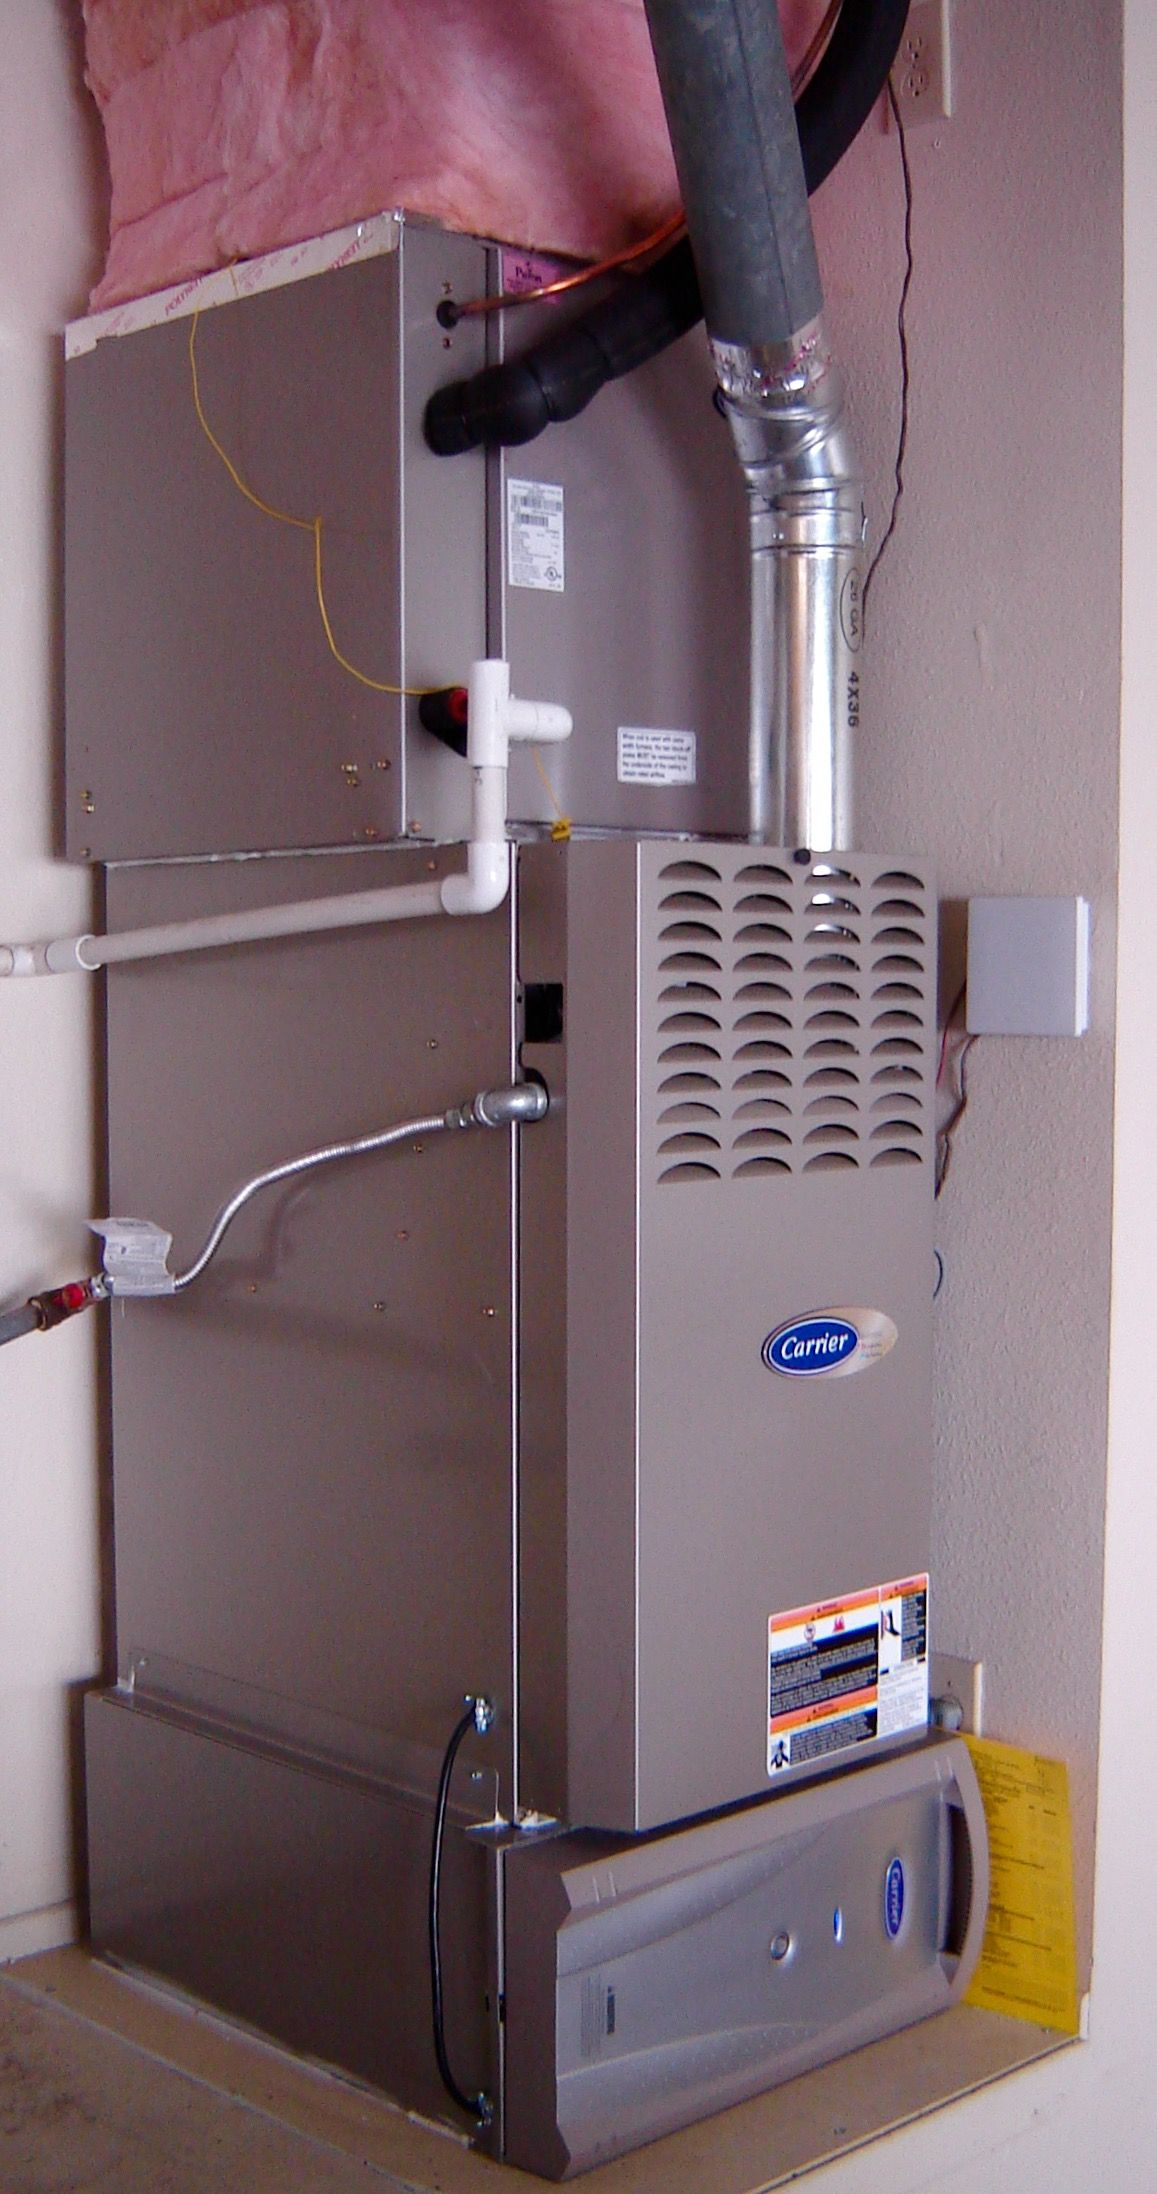 Carrier CTX Furnace with Infinity filter Installations u Repair